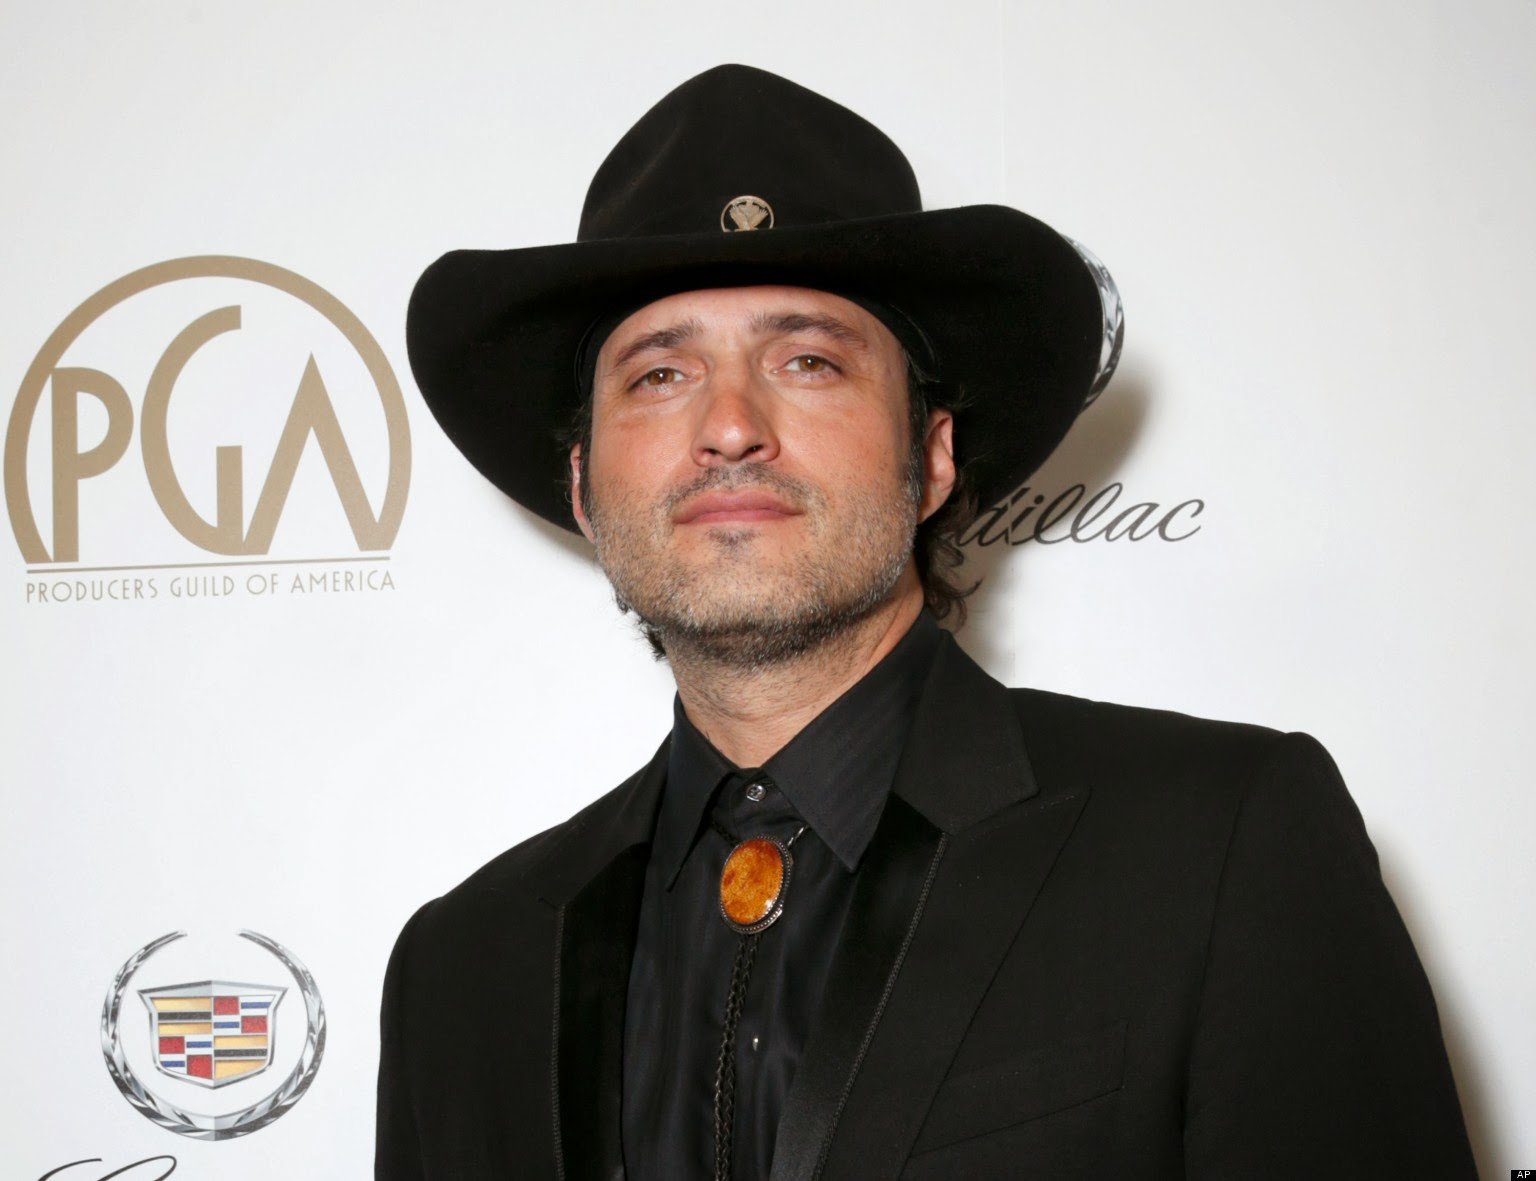 Robert Rodriguez and Guillermo Del Toro have filmed a Tv special in